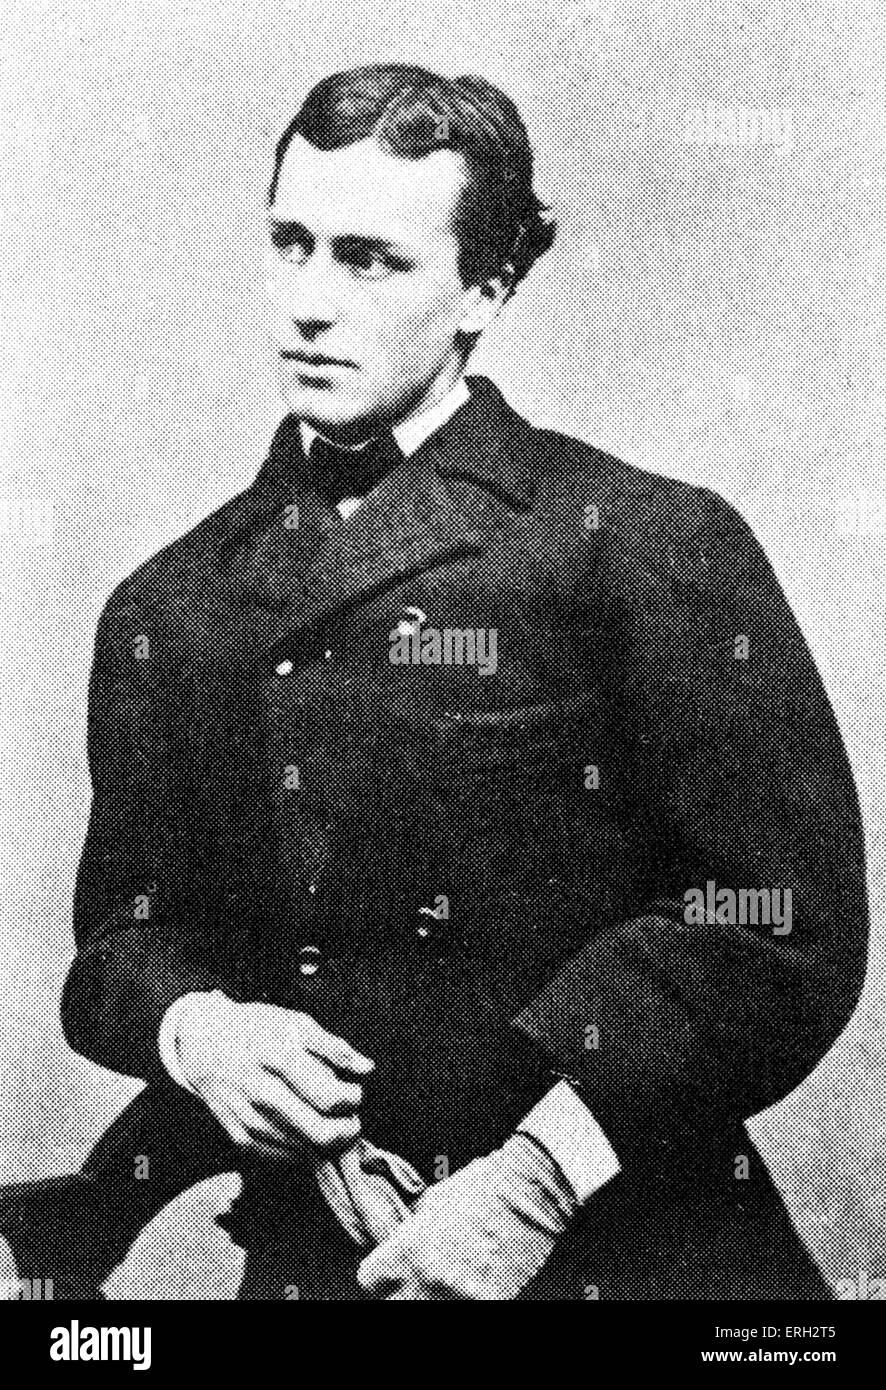 Henry James Henry James As A Harvard Student Aged 20 Newport American